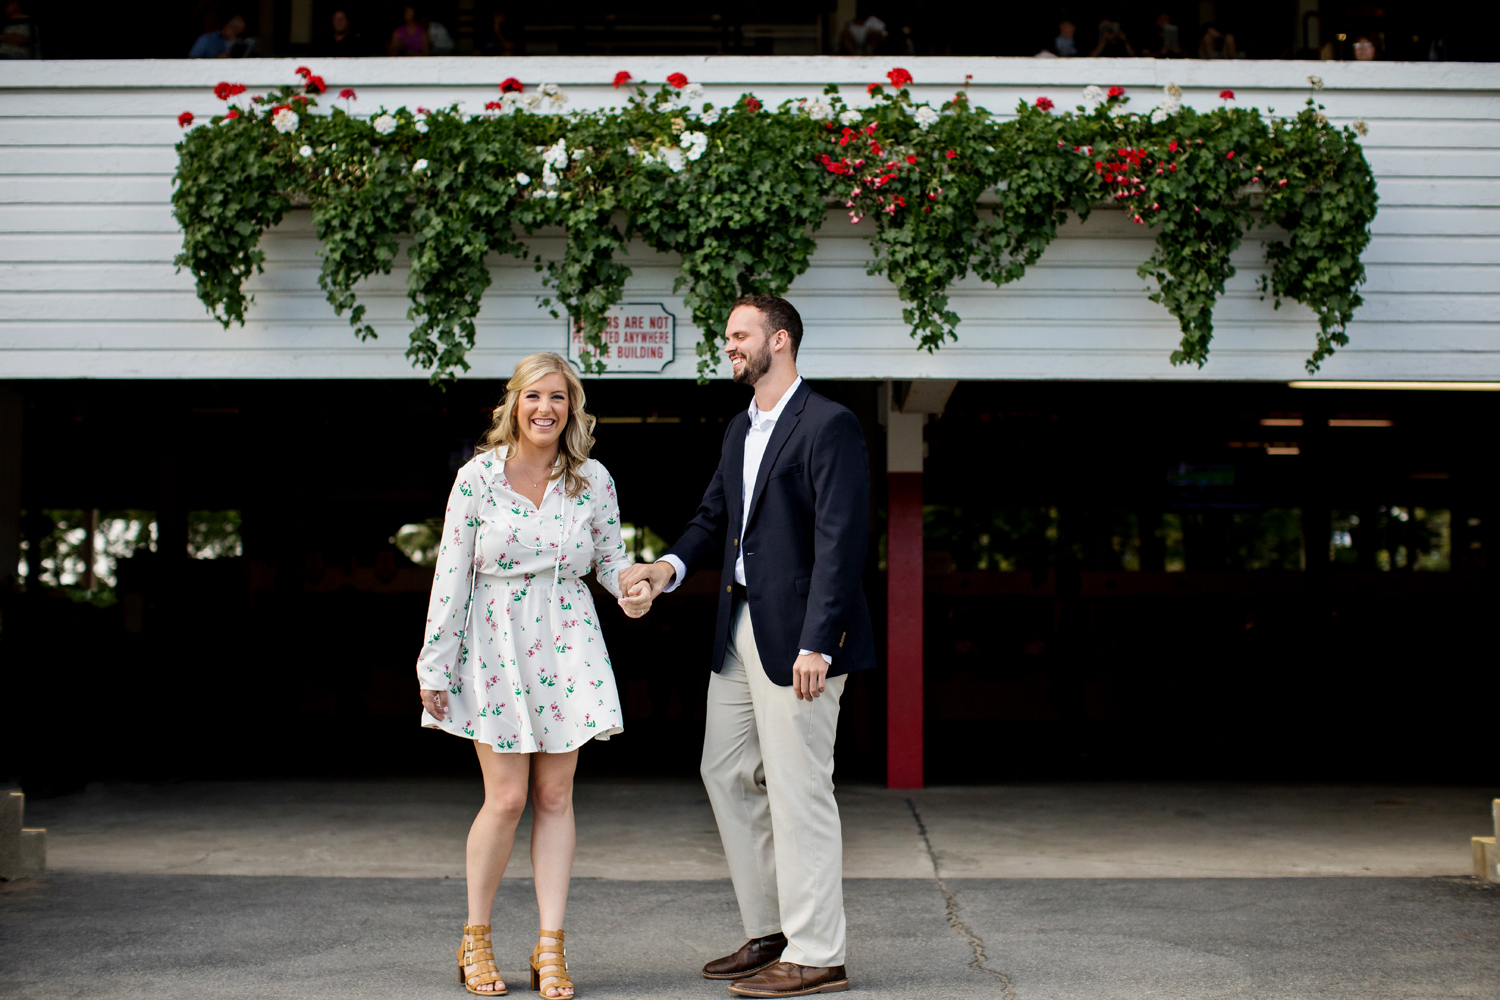 Saratoga Race Track engagement photography02.jpg